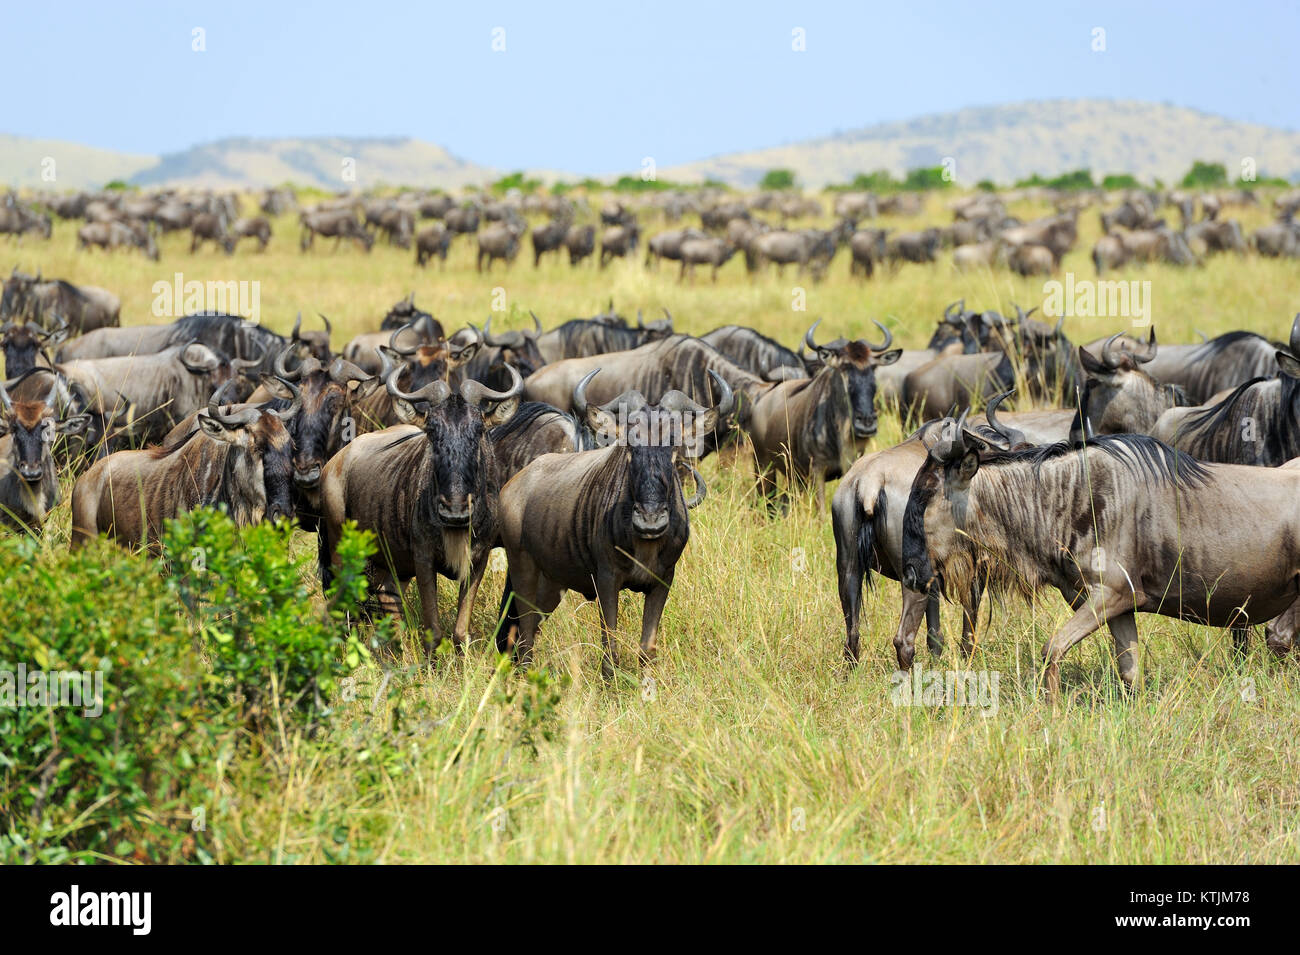 Wildebeest in savannah, National park of Kenya, Africa - Stock Image